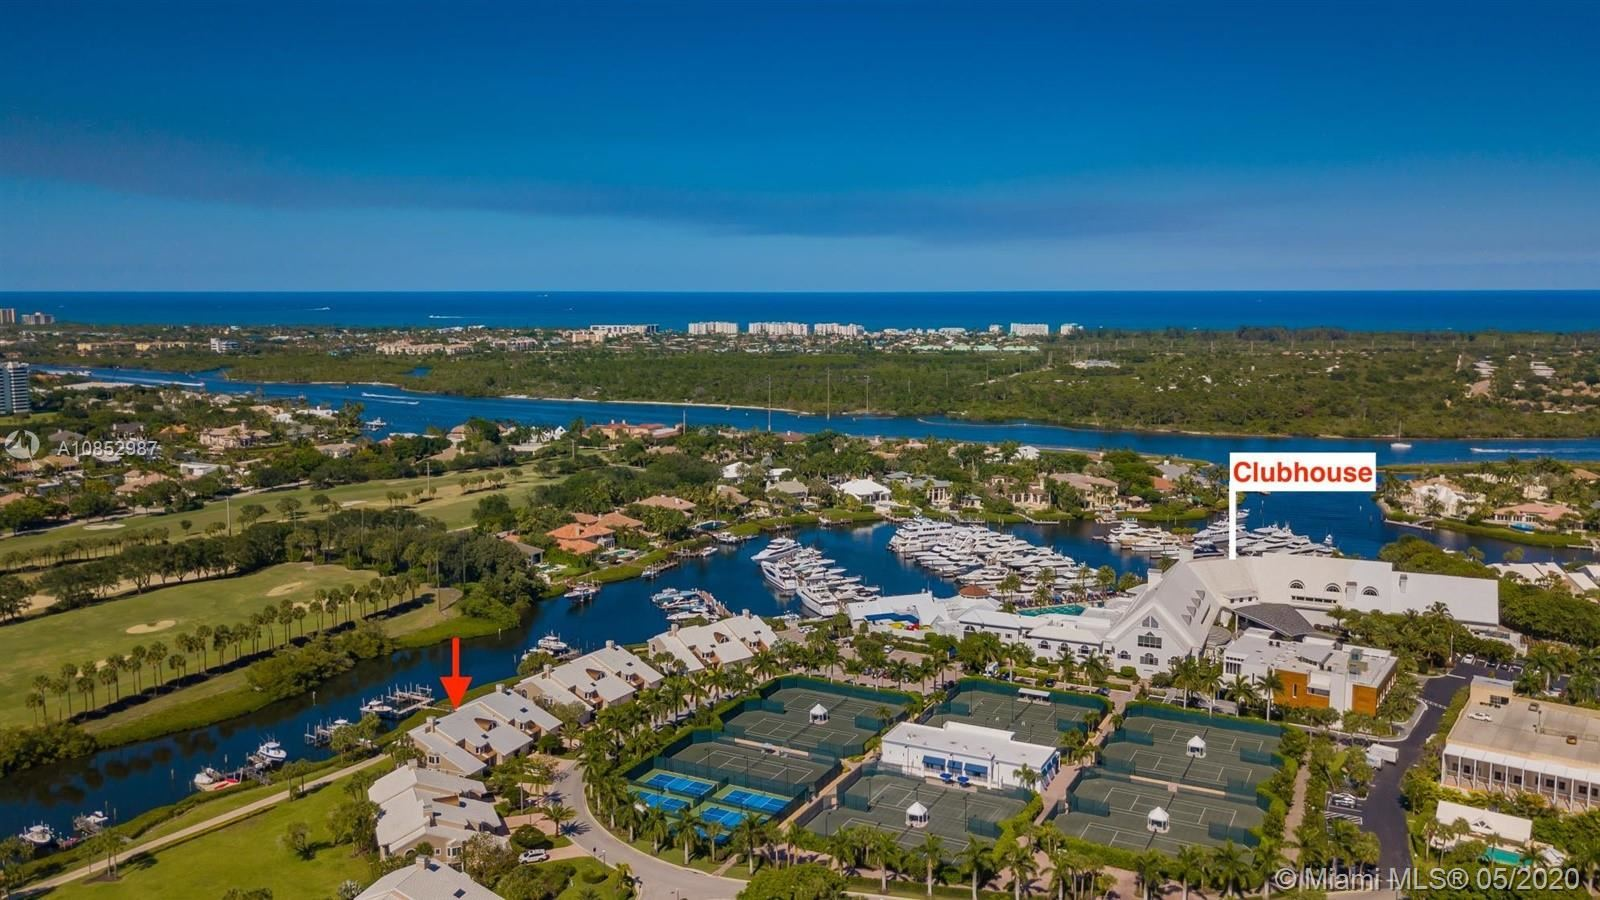 1003 Captains Way #1003, Jupiter, FL 33477 - #: A10852987